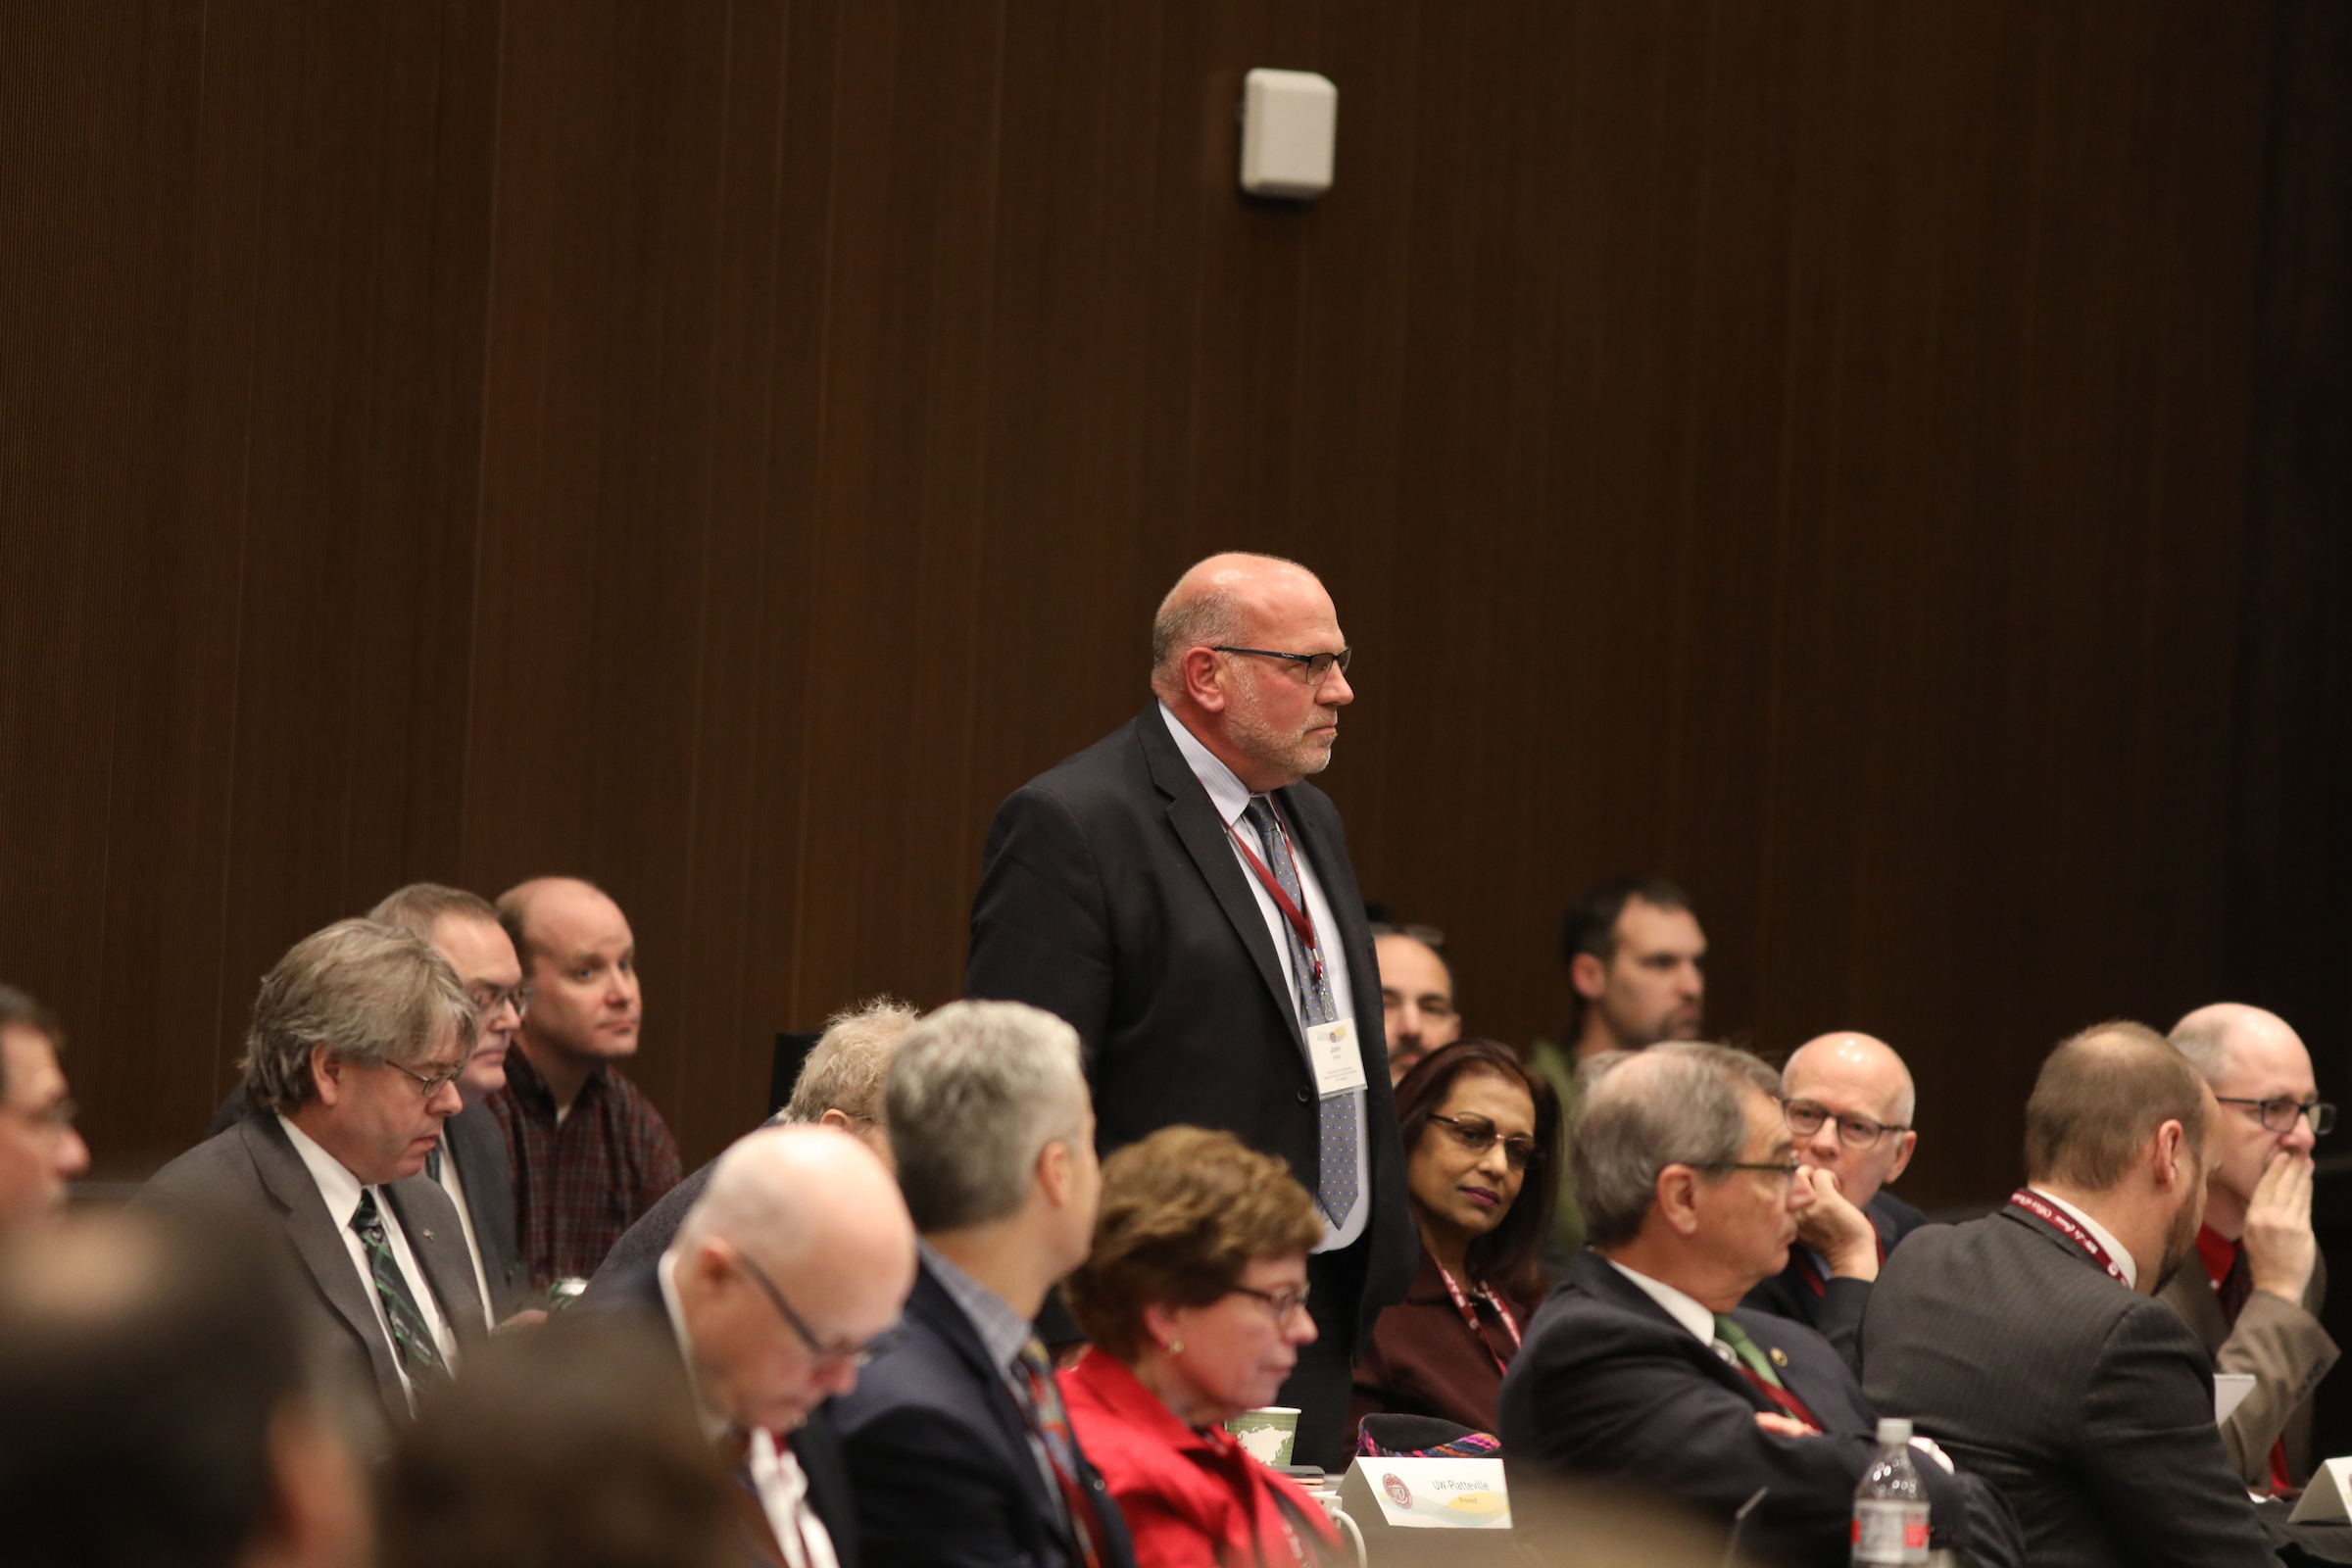 Photo of John Koker, newly named Provost & Vice Chancellor for Academic Affairs at UW-Oshkosh, being introduced at the UW System Board of Regents meeting hosted by UW-La Crosse on December 6, 2018